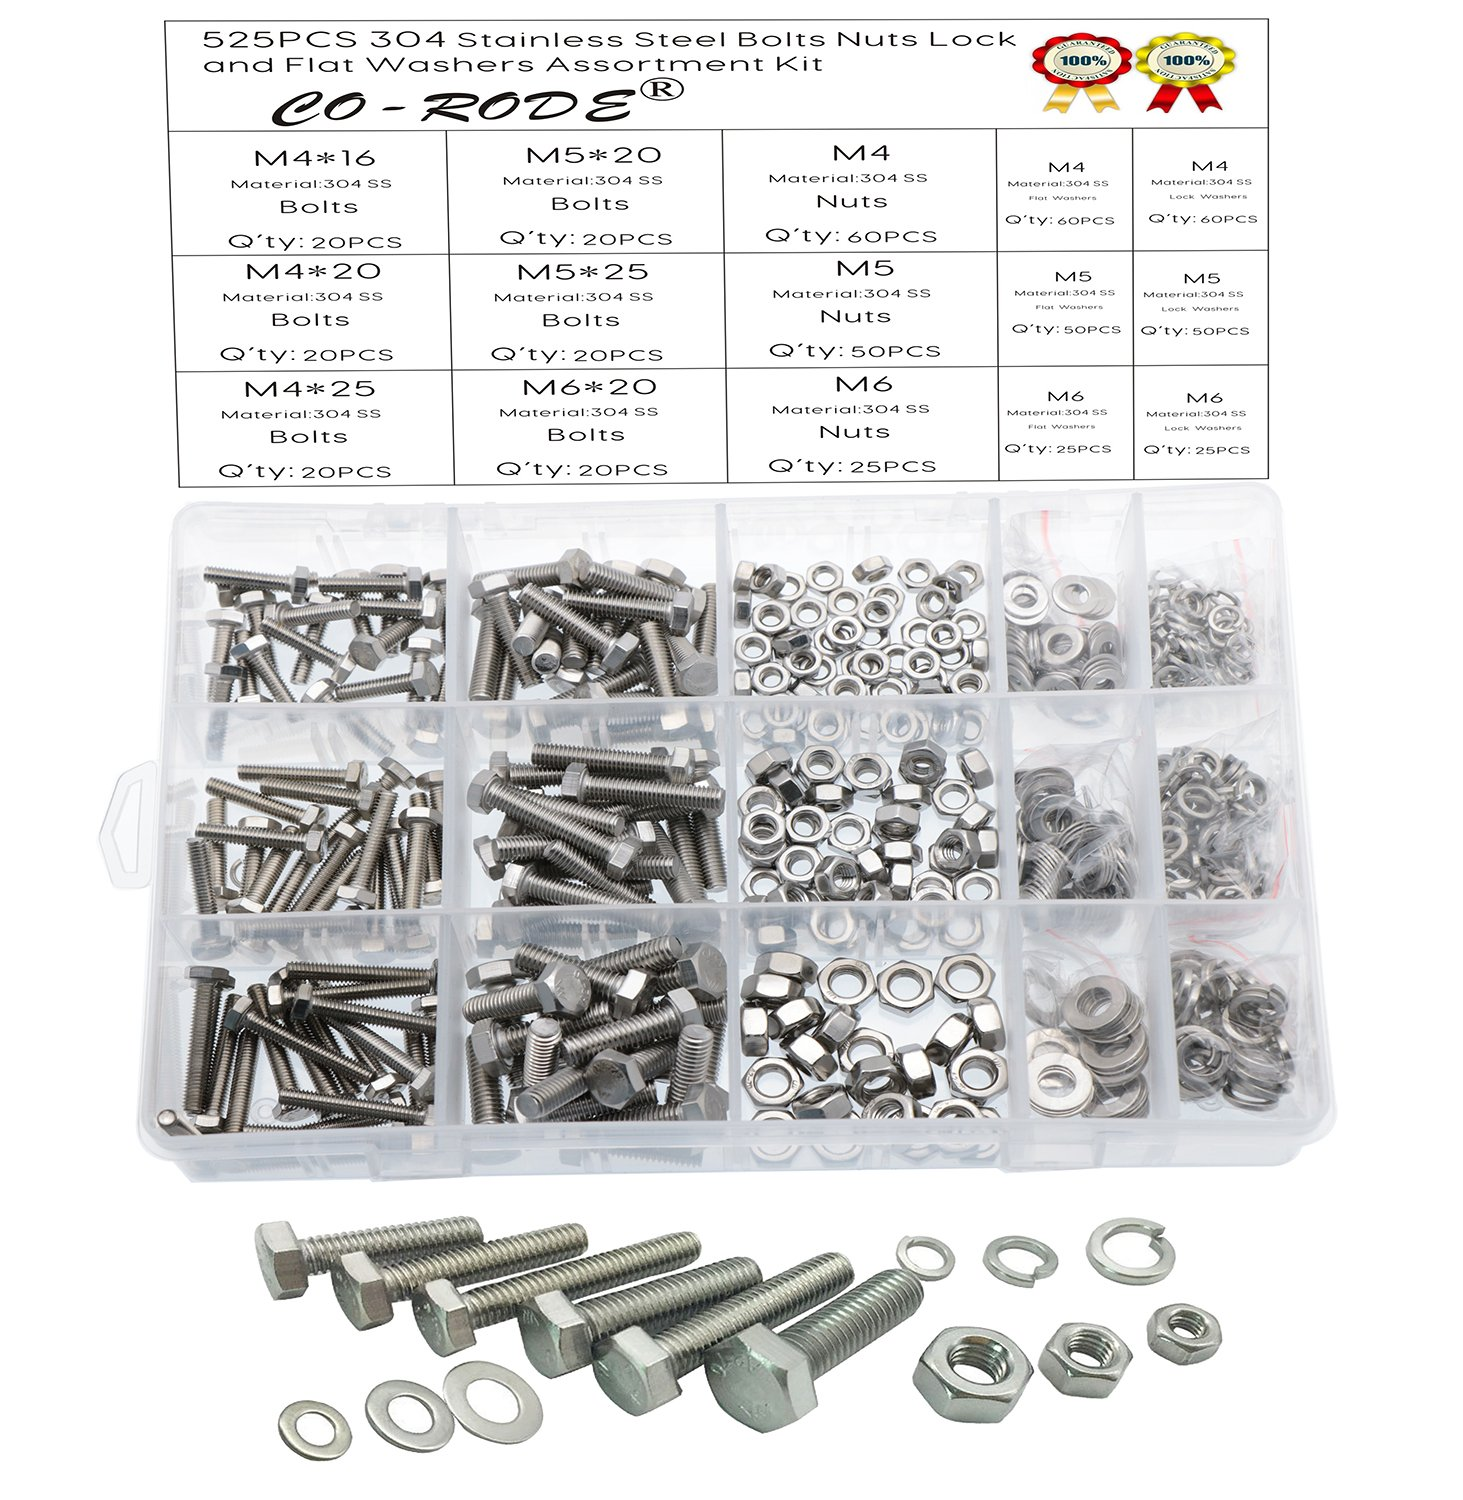 525pcs Stainless Steel Hex Head Cap Bolts Nuts Screw with Lock and Flat Washers Assortment